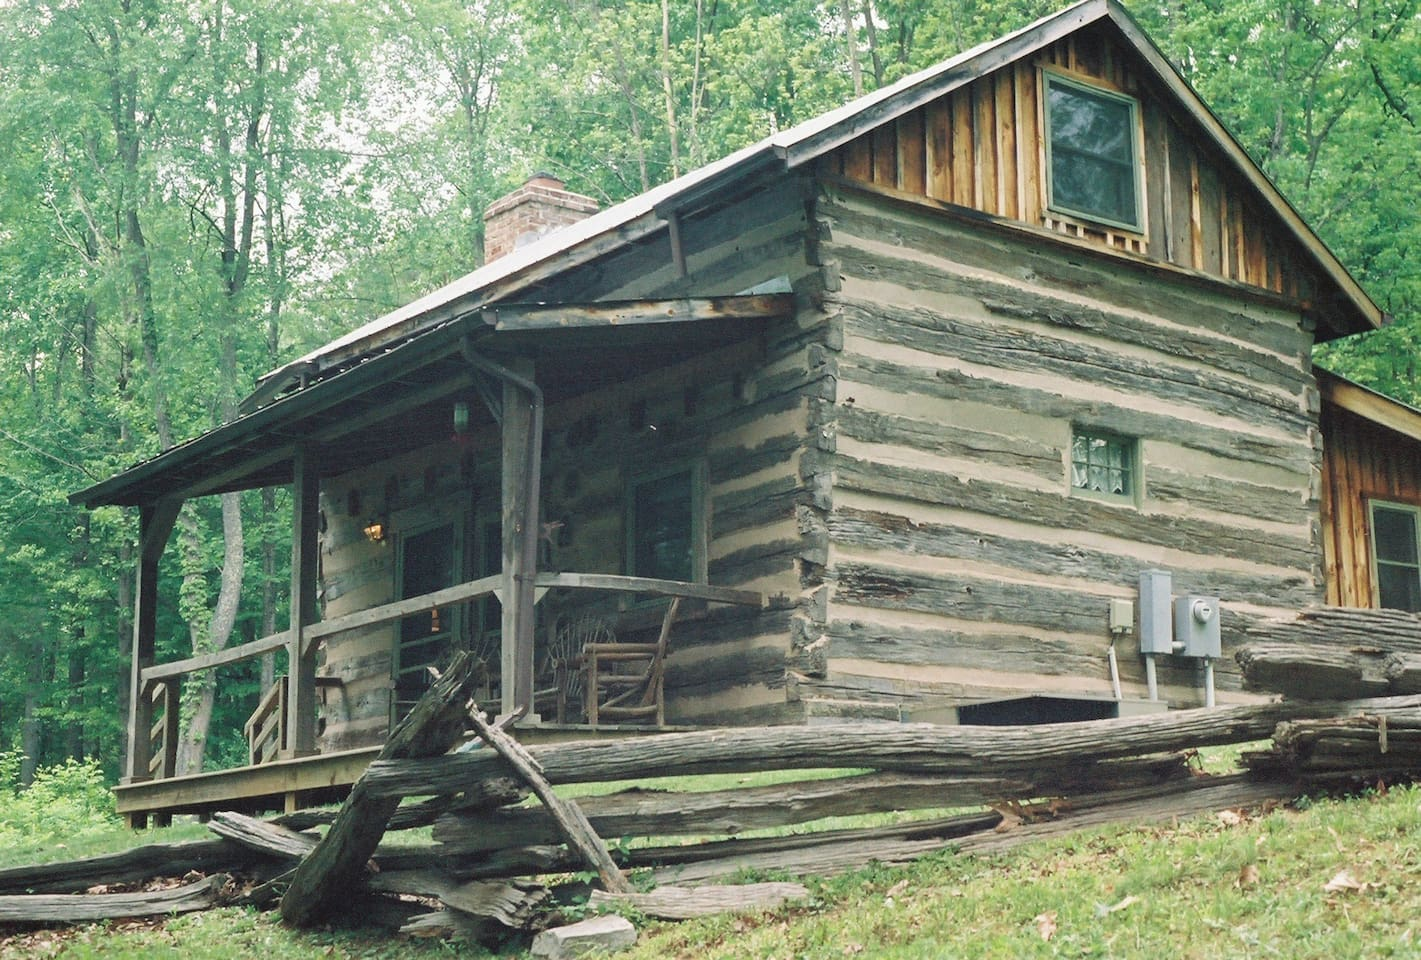 Log Cabin on knoll in meadow with private road access. This cabin c 1775 was moved from West Virginia & reconstructed adding a 2nd floor bedroom, a screened-in sitting porch, a kitchenette & a large bathroom.